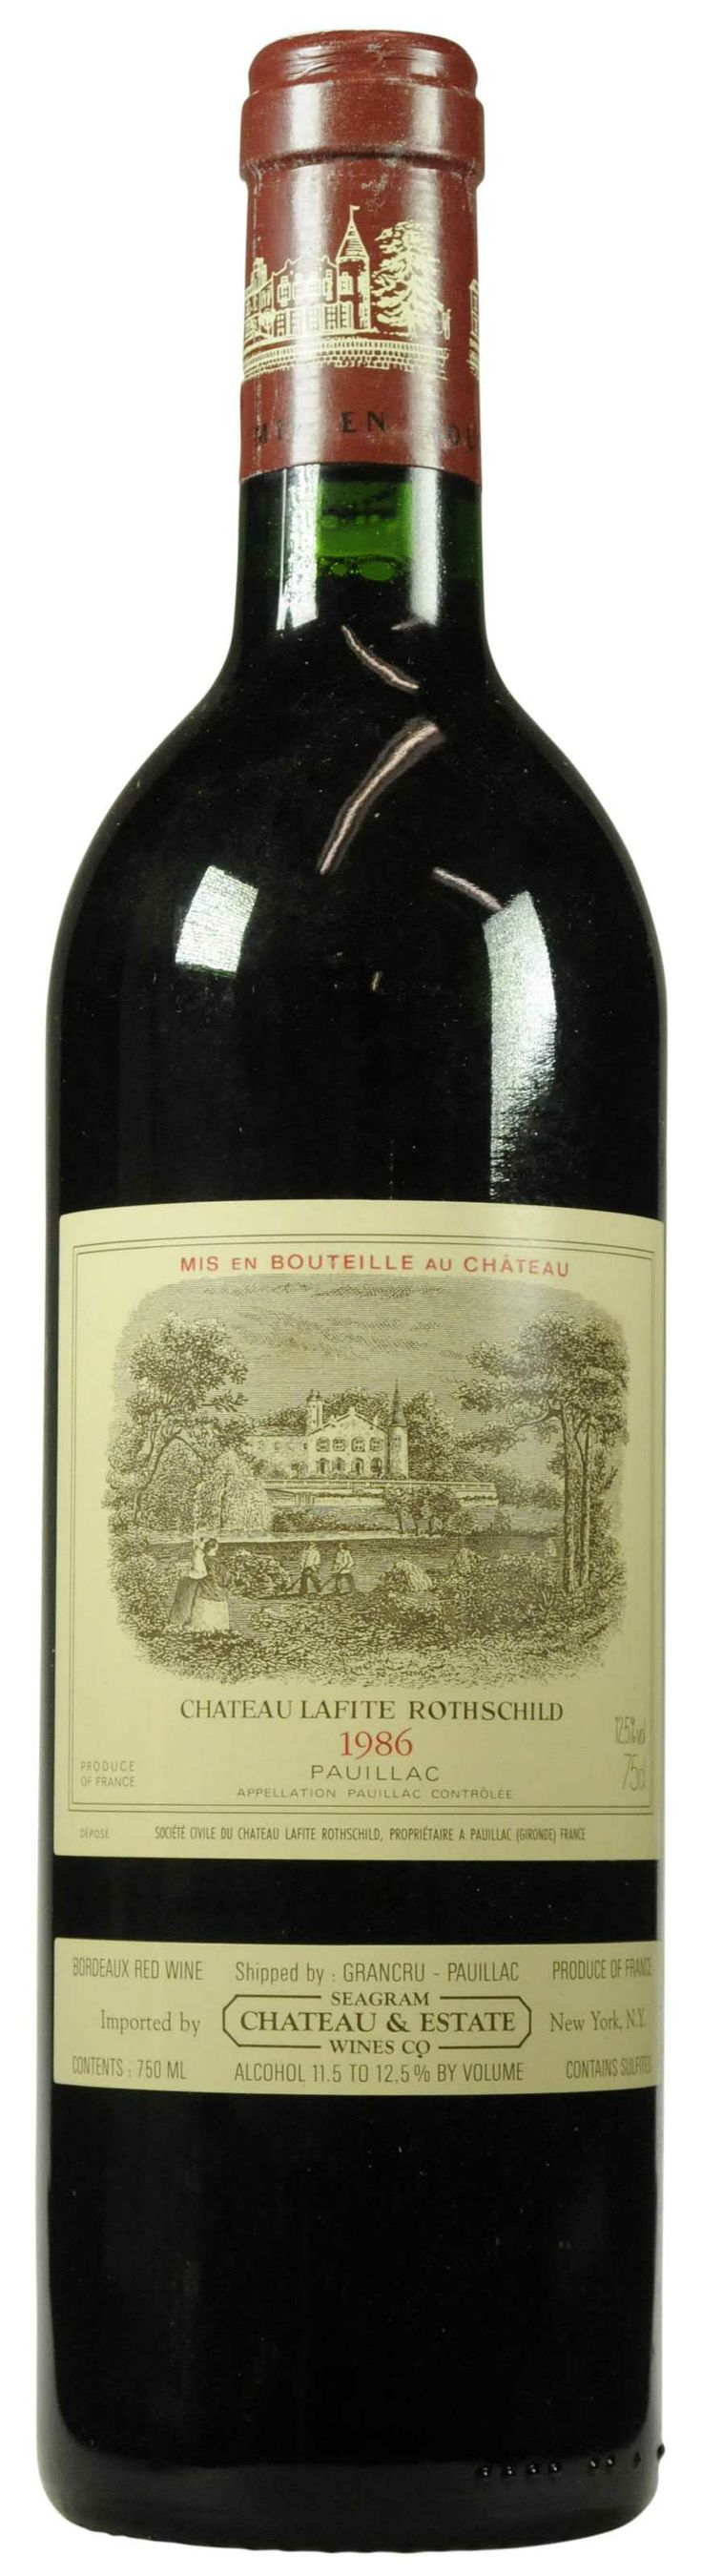 Château Lafite-Rothschild 1986  l Christie's Signature Cellars - Online Wine Auction New York Going on NOW- 18 February - 27 February...CLICK TO BID!